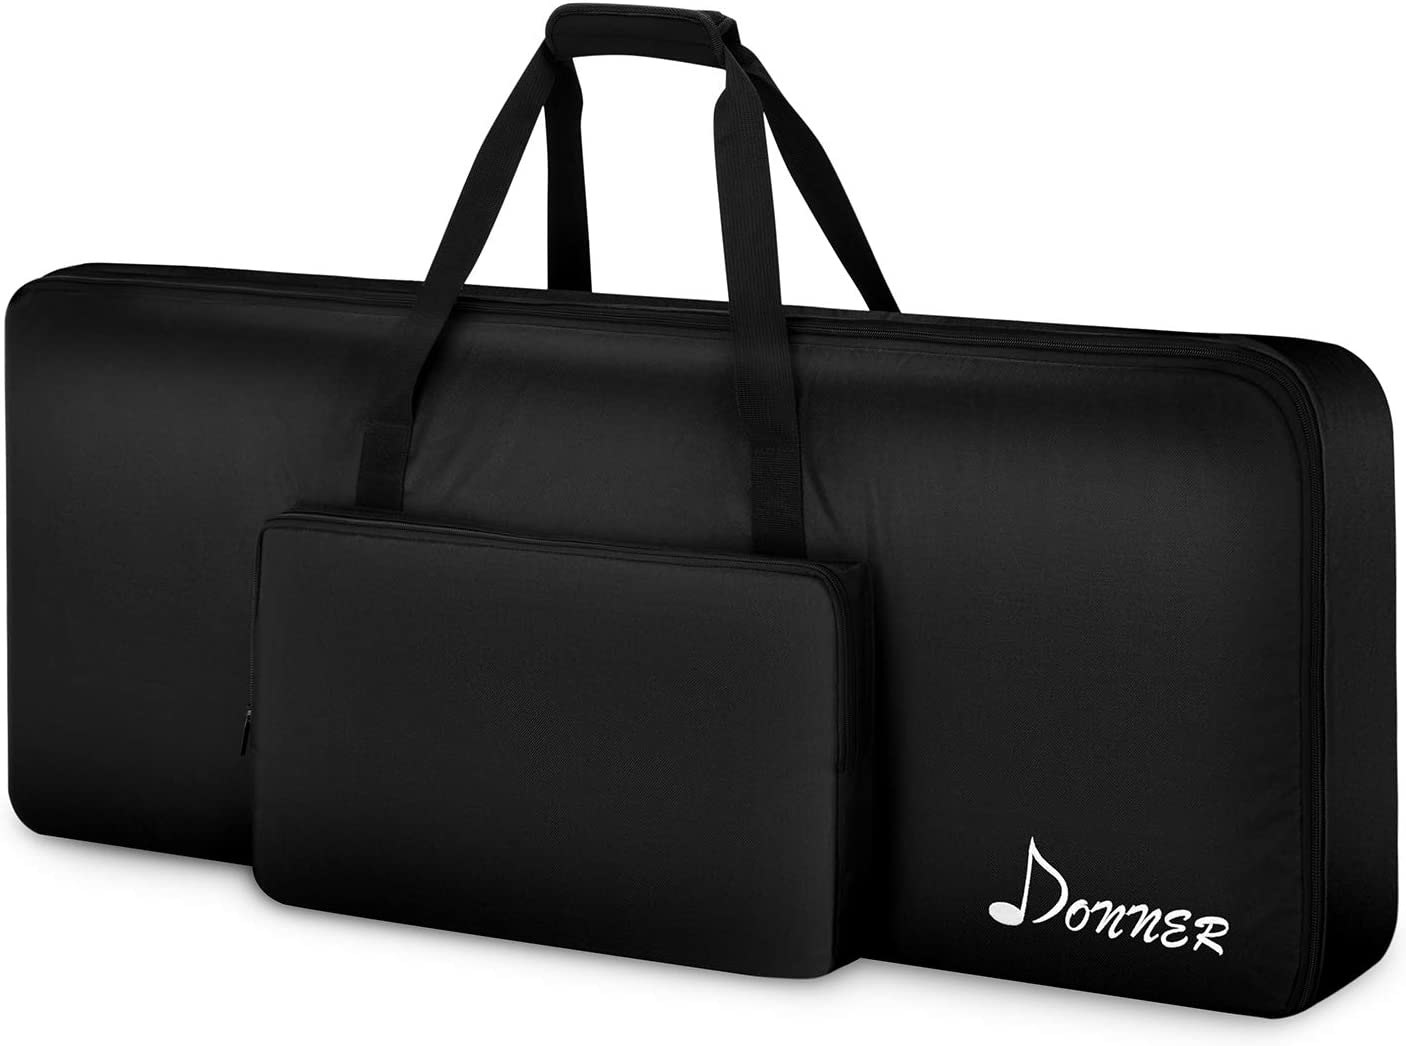 61-Key 54-Key Keyboard Electric Piano Organ Gig Bag Soft Case Dual Zipper 420D Cloth Padded Case with Handle Strap Adjustable Shoulder Backpack Travel Tote with Extra Pockets Gift for Music Students